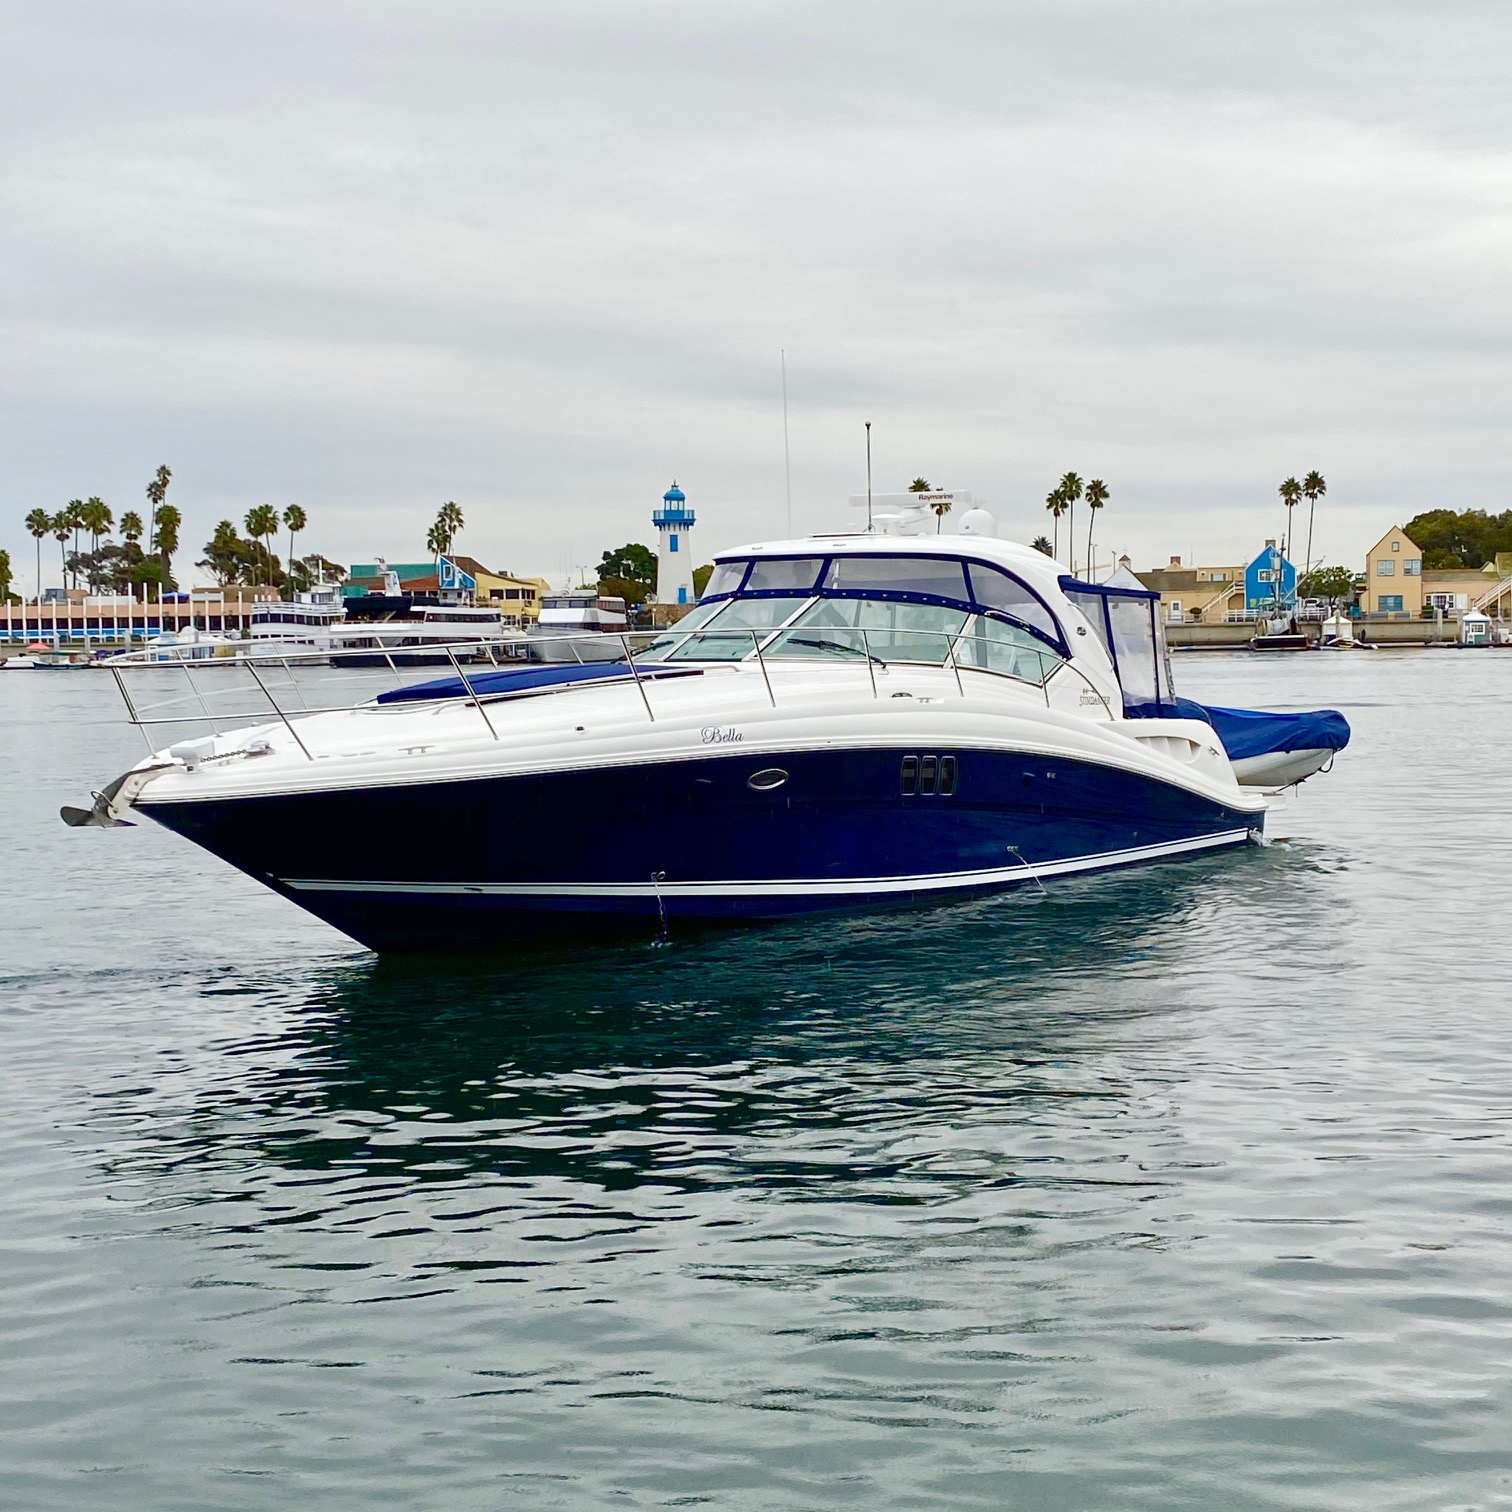 Bella Boating Los Angeles Marina Del Rey Yacht Charter